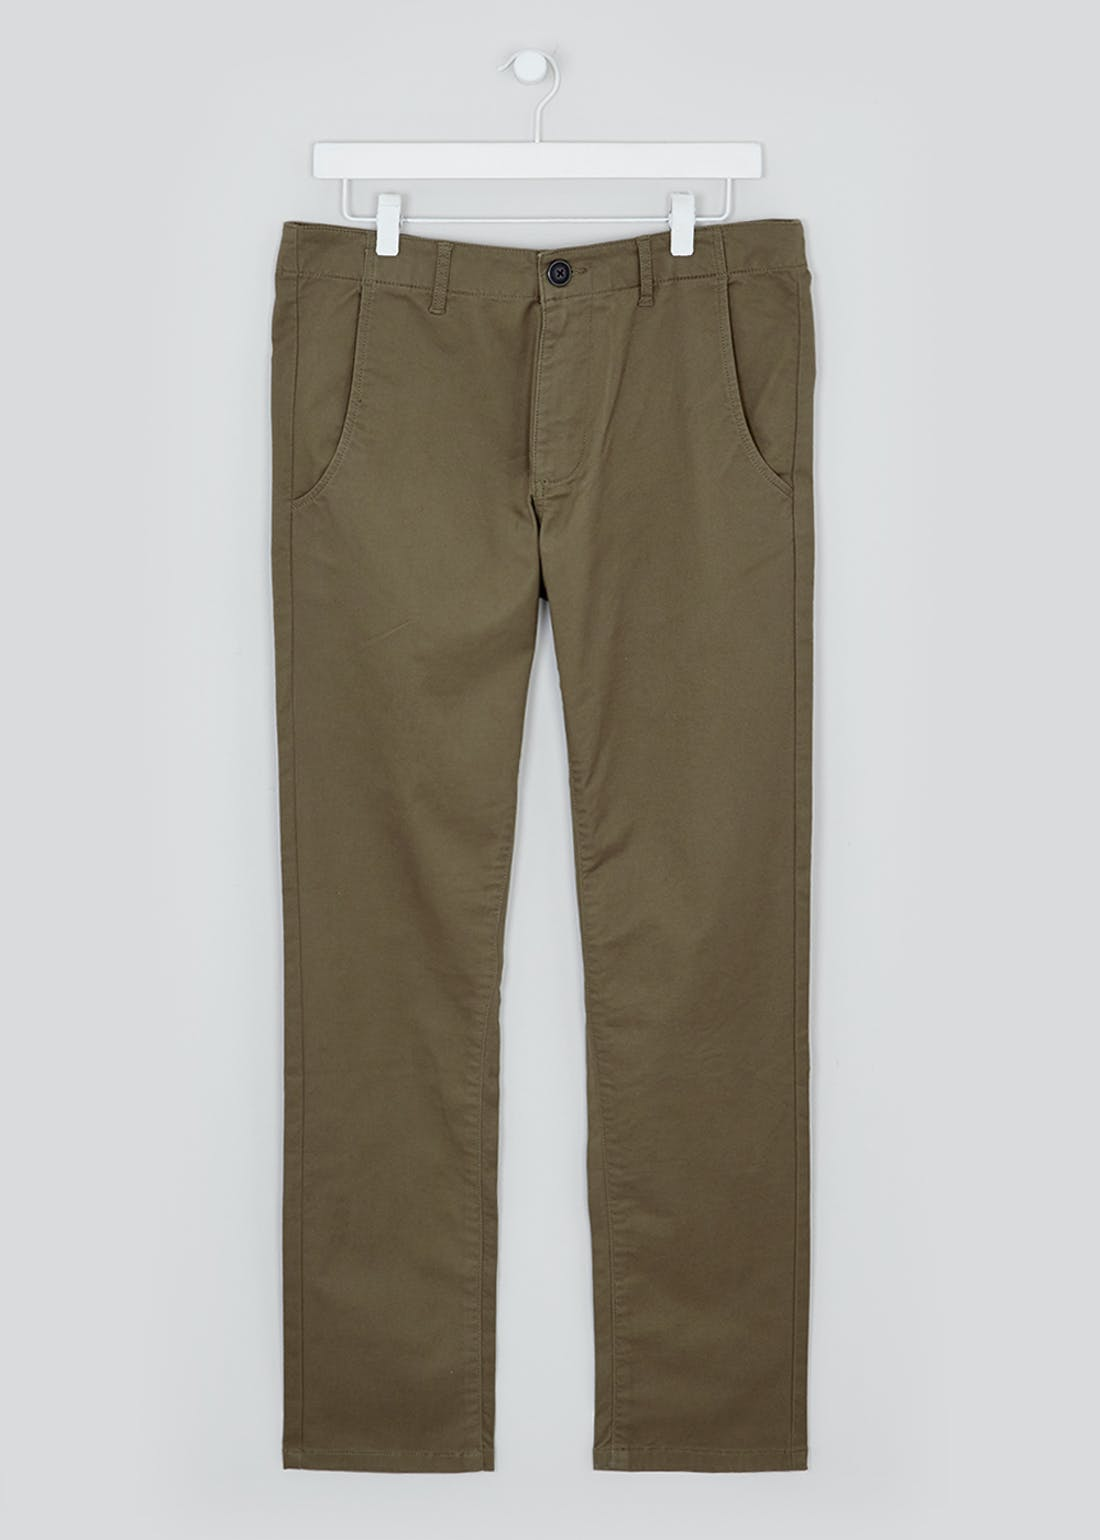 Laundered Slim Fit Chinos